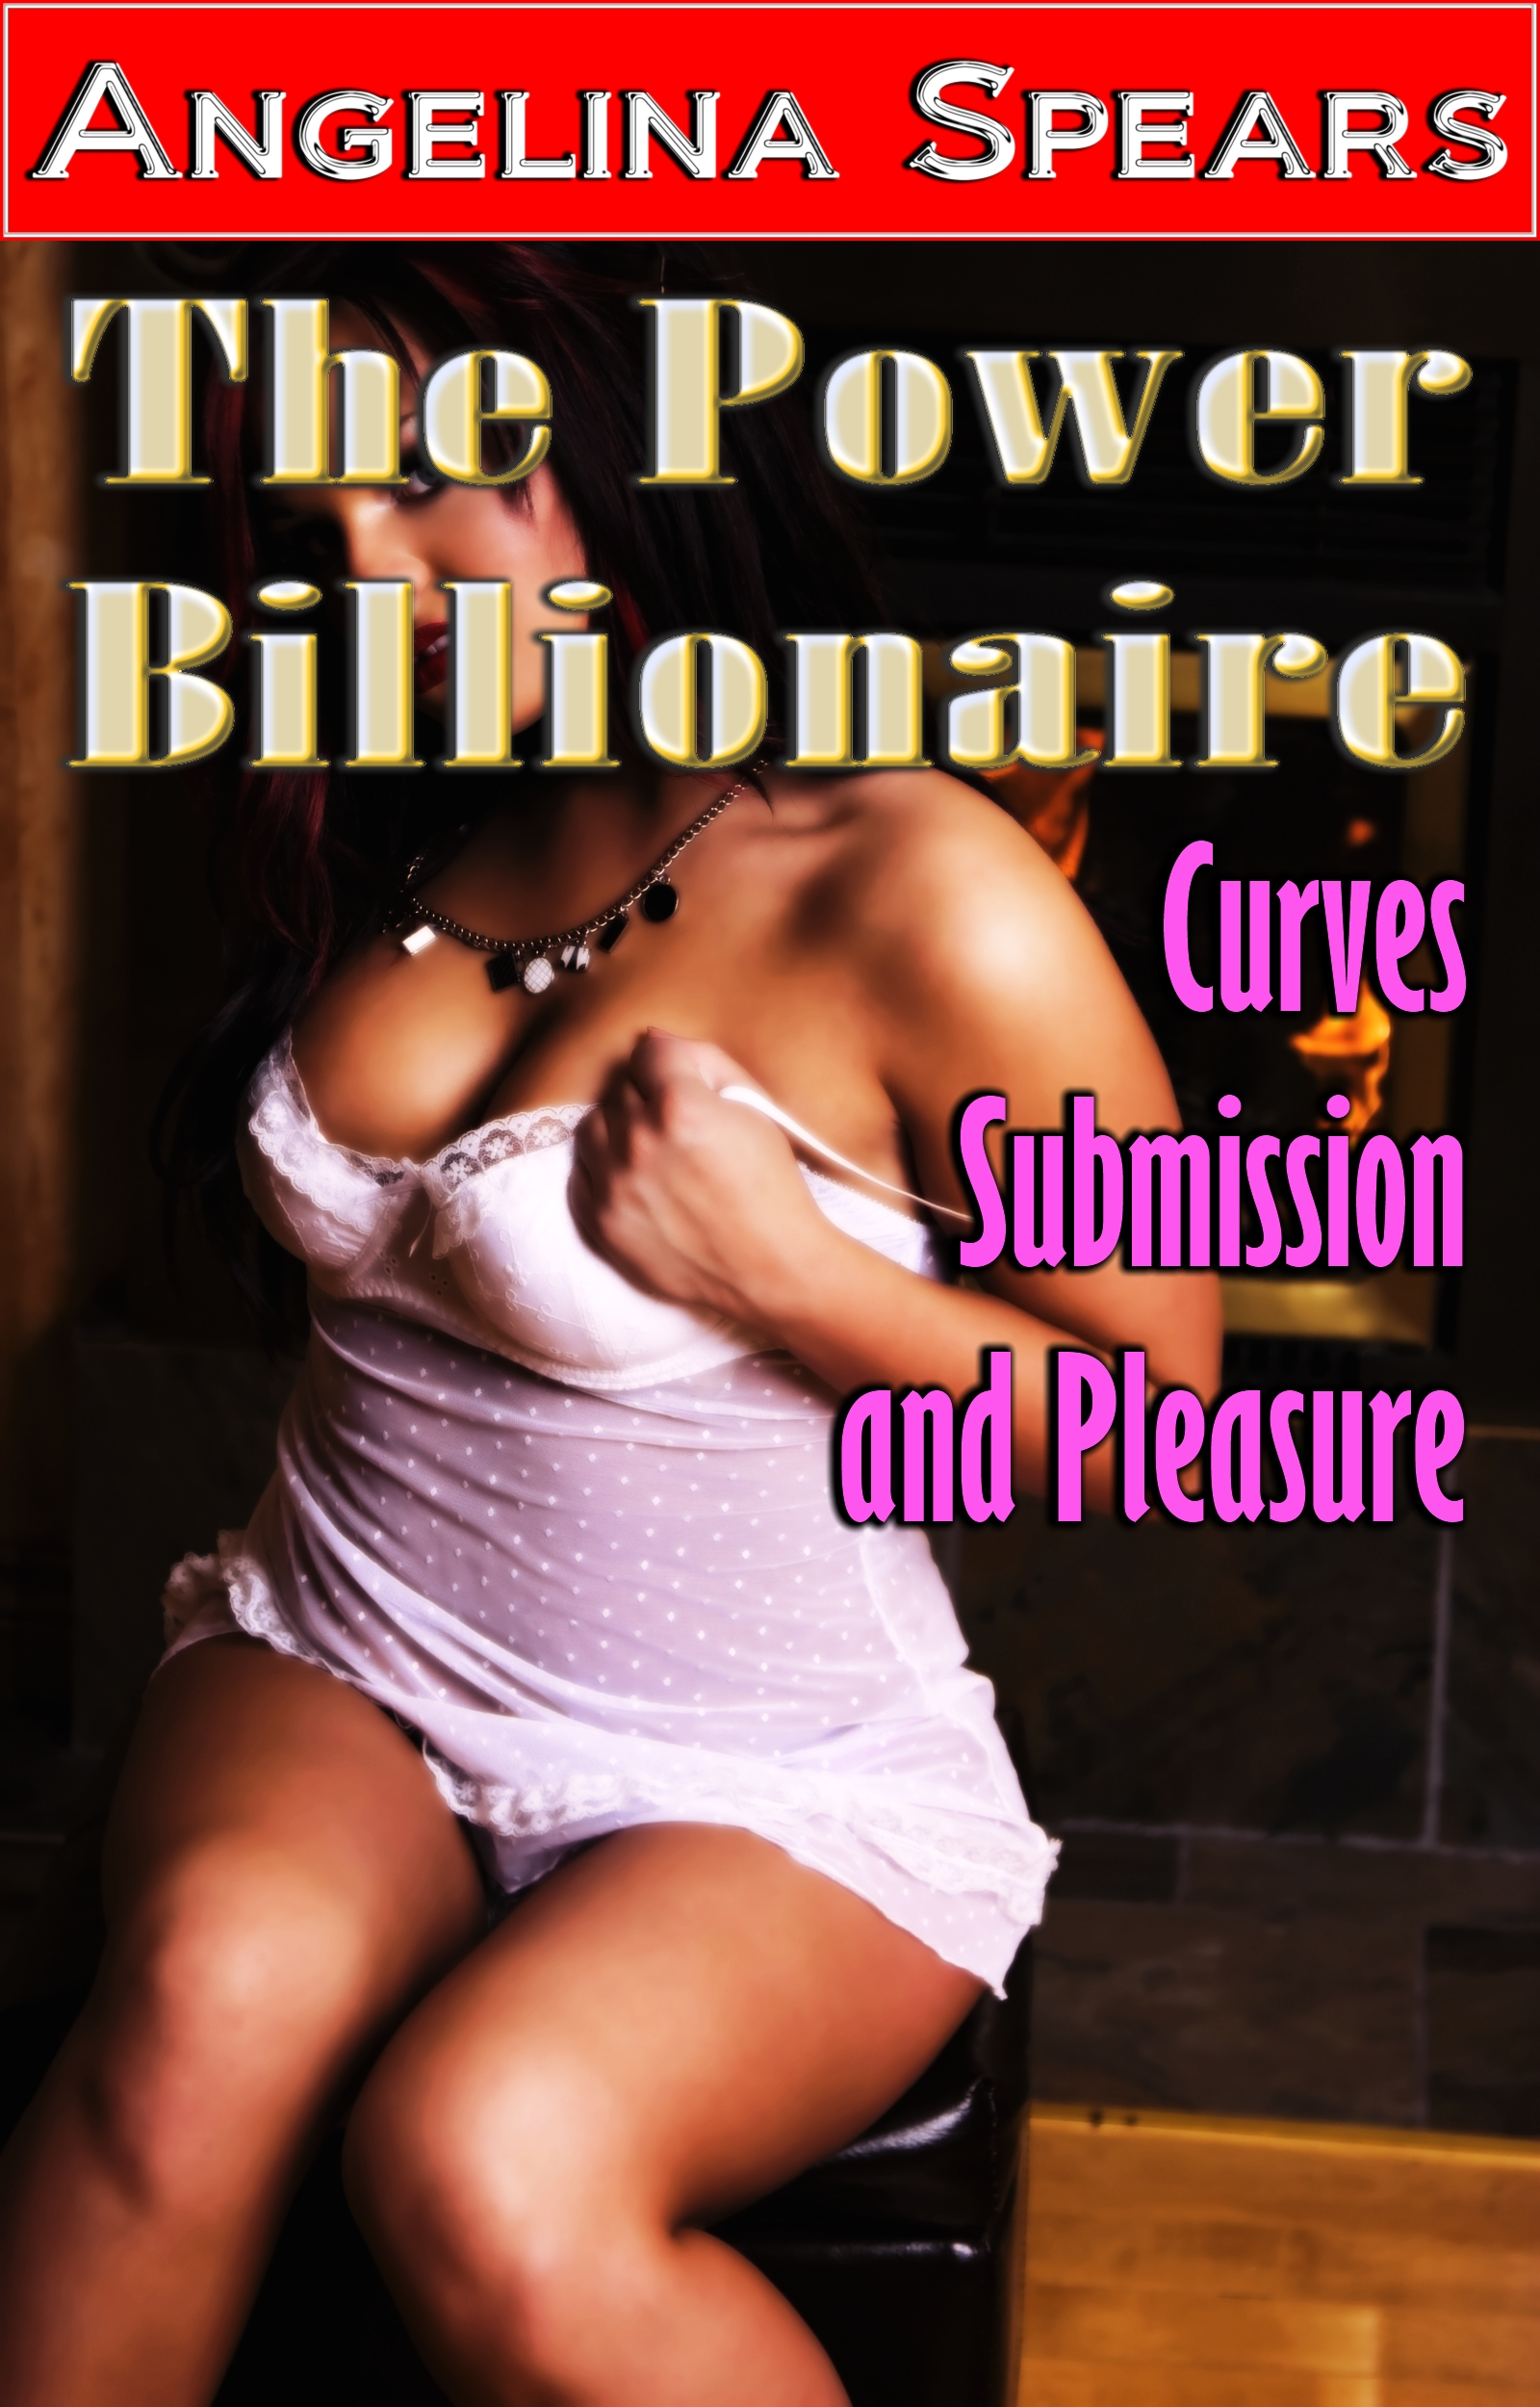 The Power Billionaire - Curves, Submission and Pleasure By: Angelina Spears